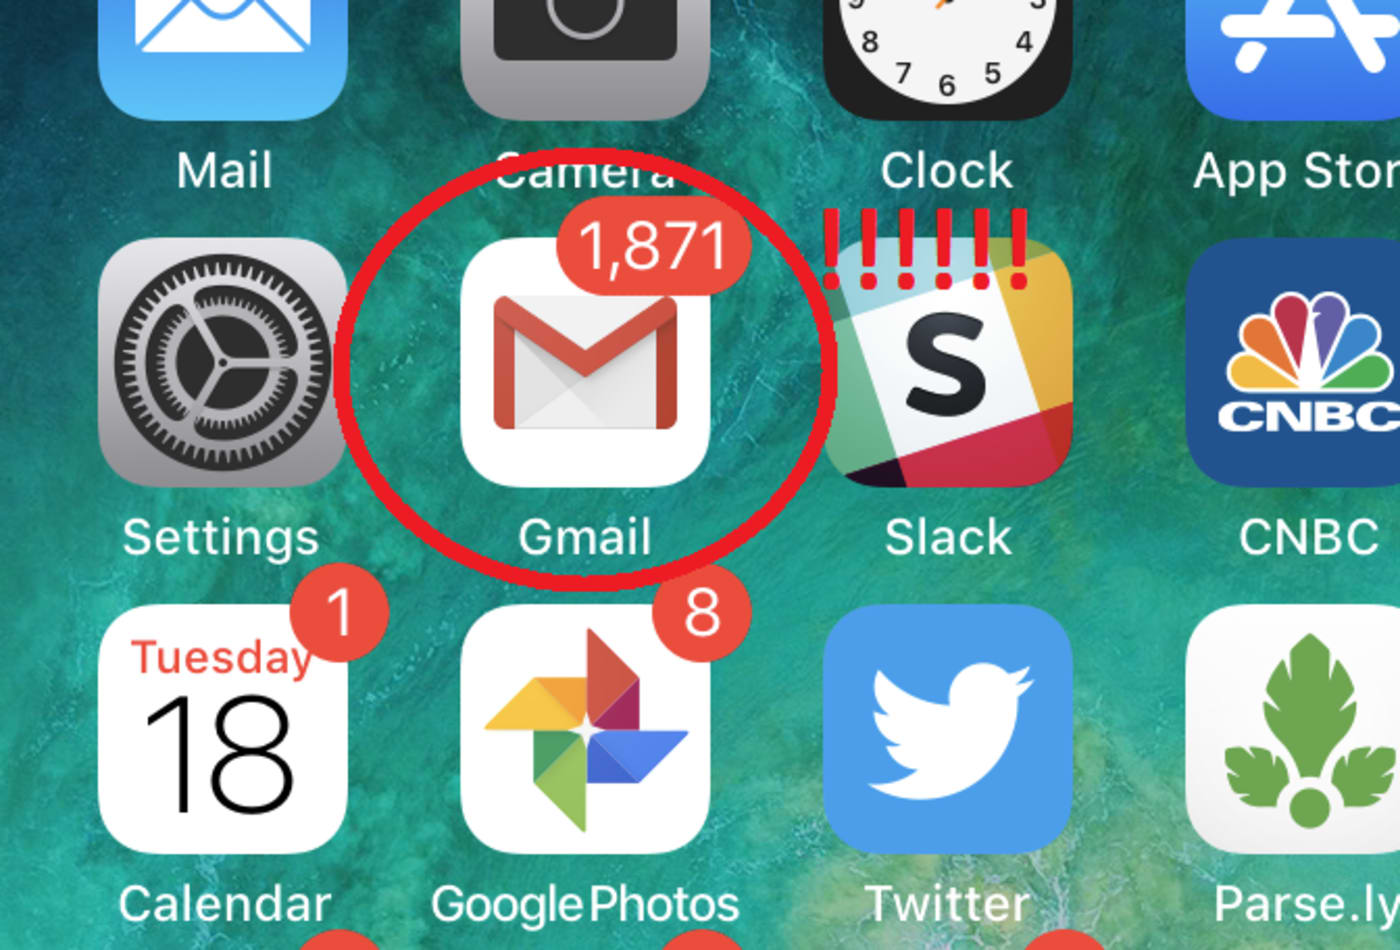 How to clear all those old emails out of Gmail so you don't have to pay for storage